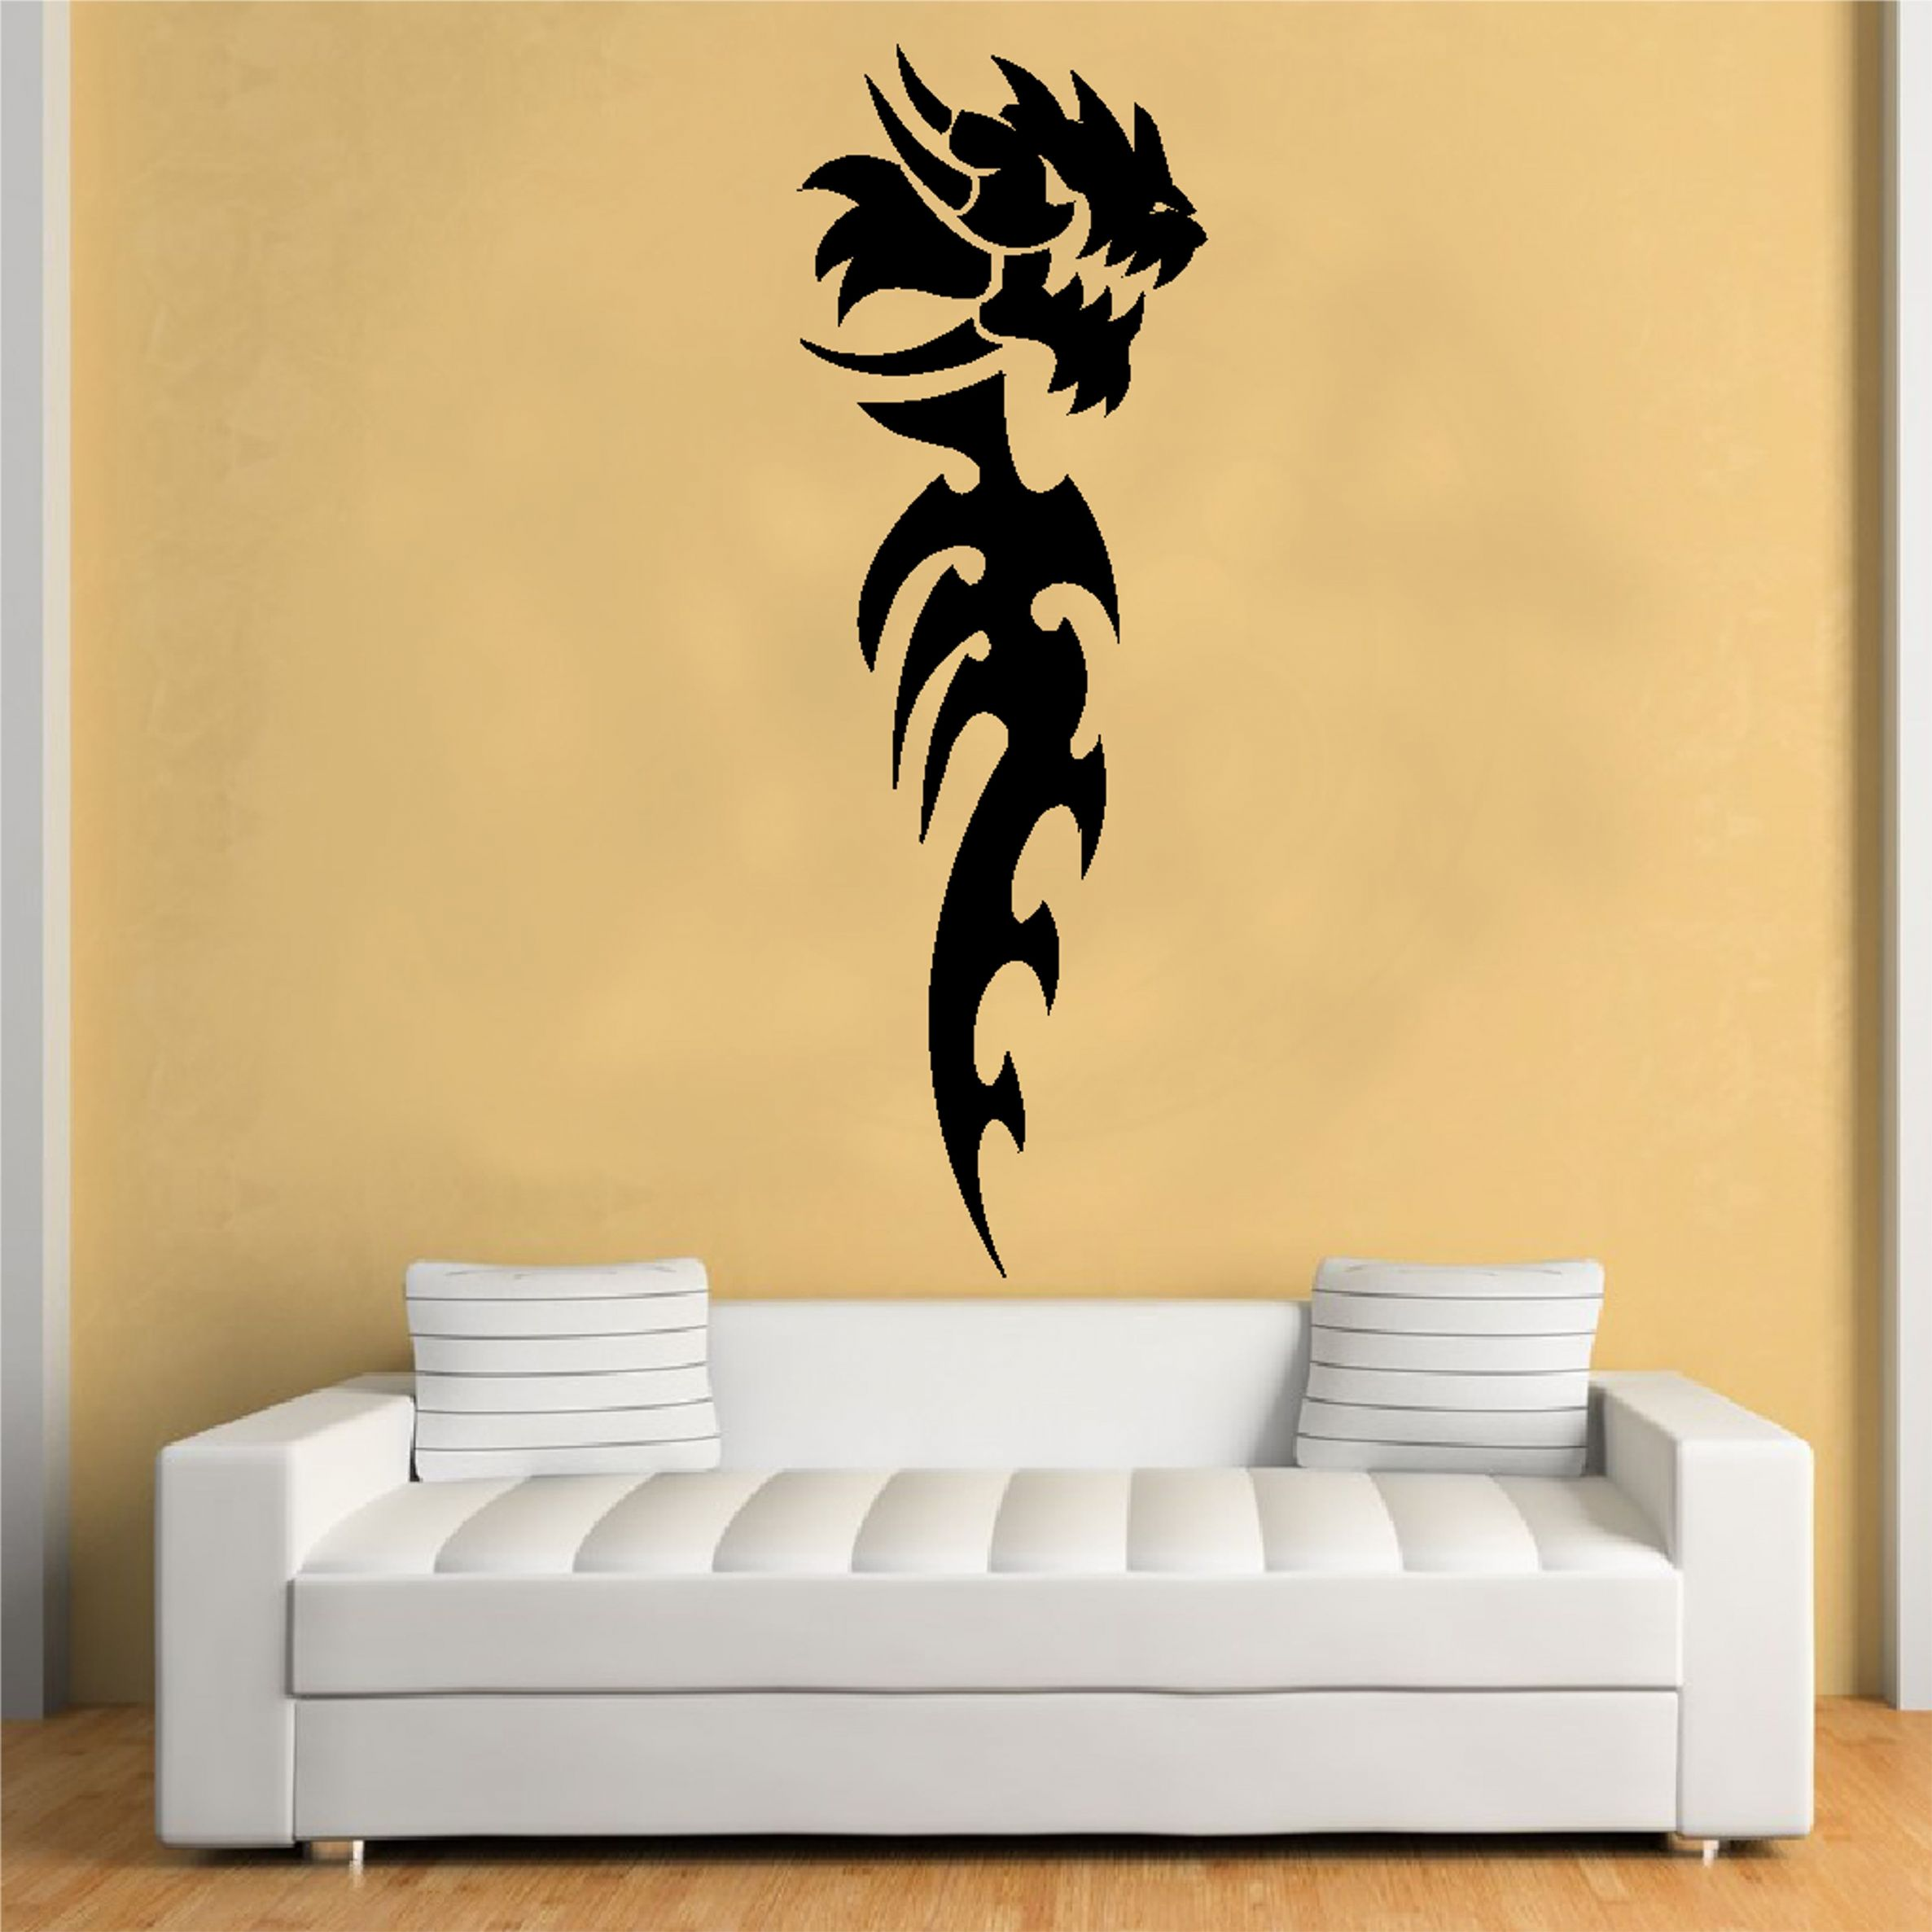 Awesome Simple Wall Decoration Vignette - Art & Wall Decor ...